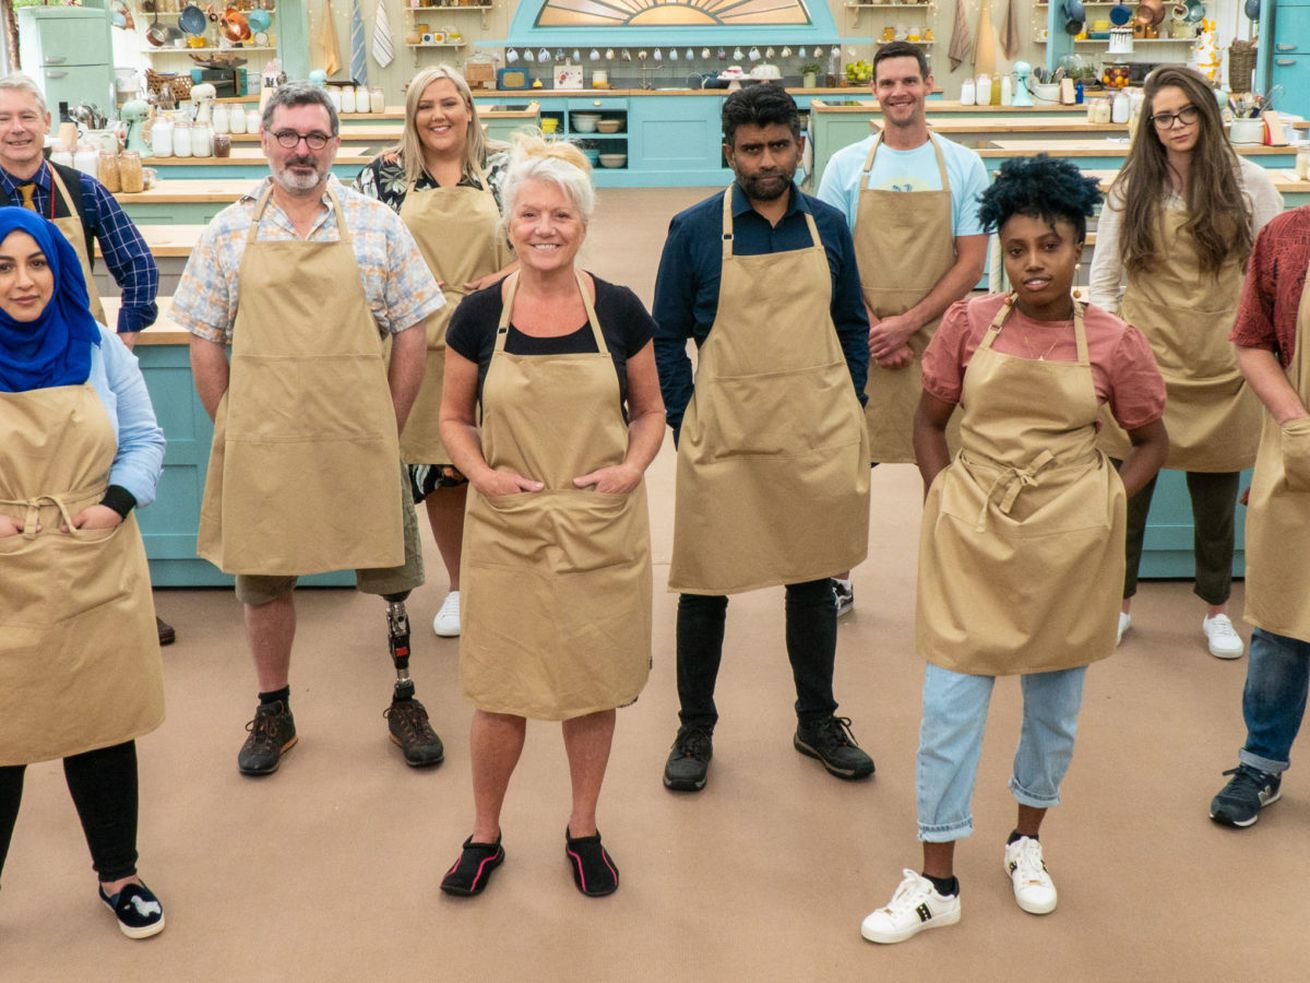 The contestants of the 11th season of the Great British Bake Off, wearing beige aprons, in the tent